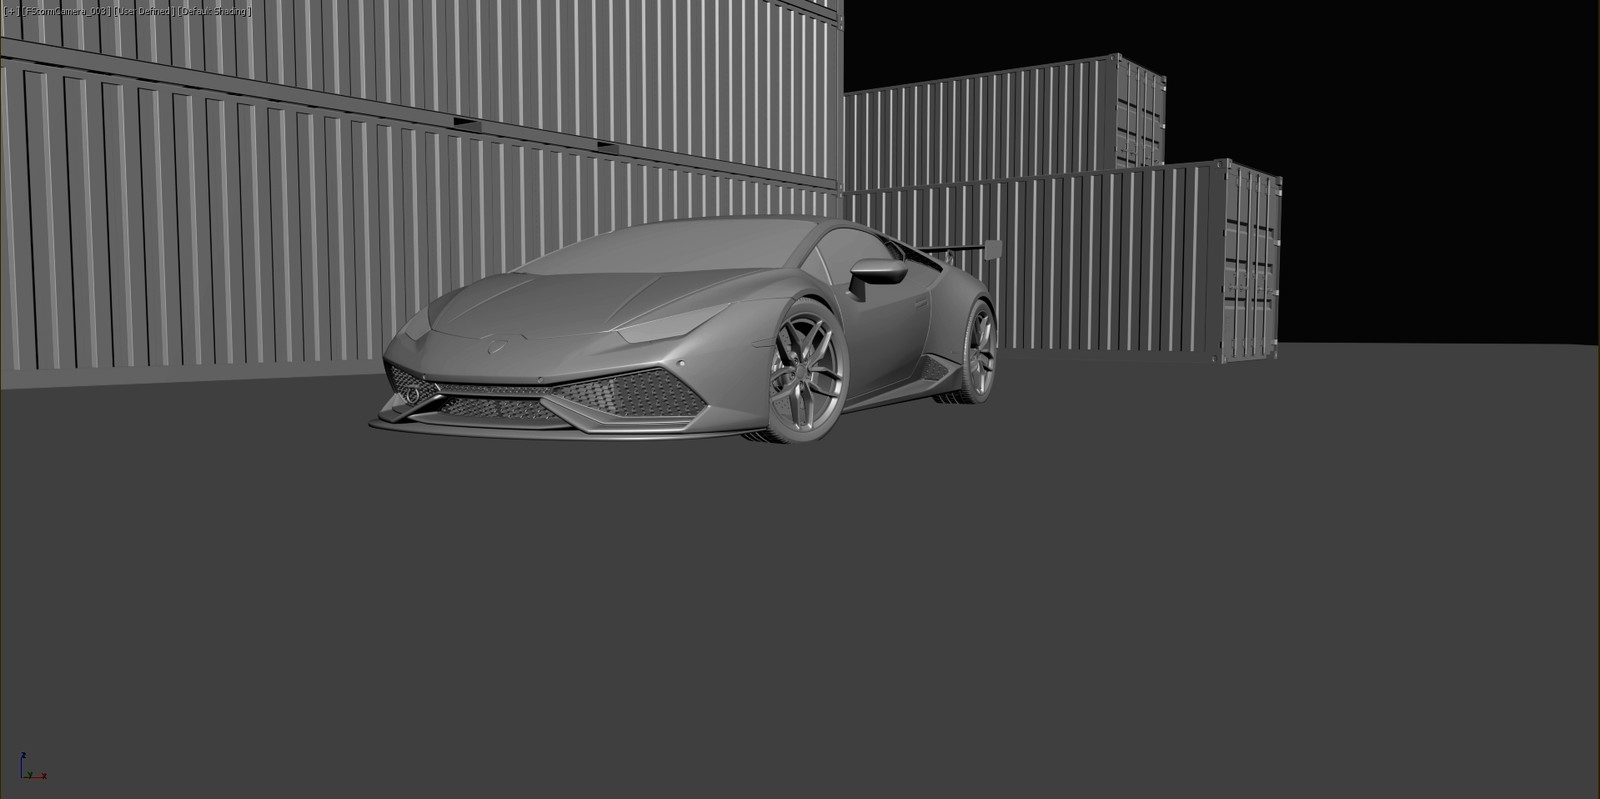 Huracan - shaded view